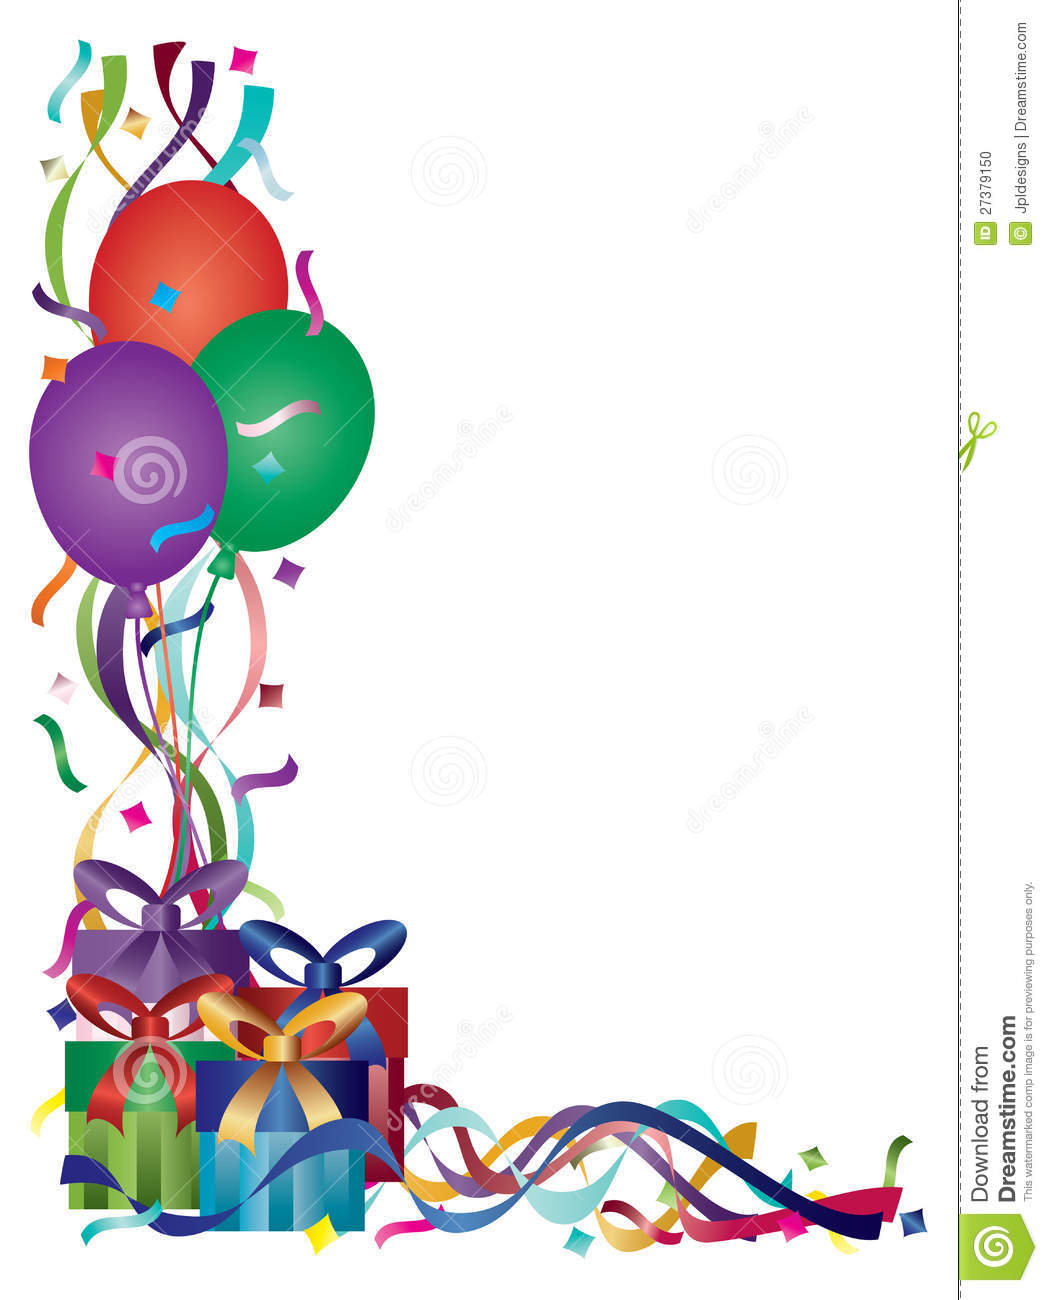 Birthday Presents with Colorful Ribbons and Confetti Border Background ...